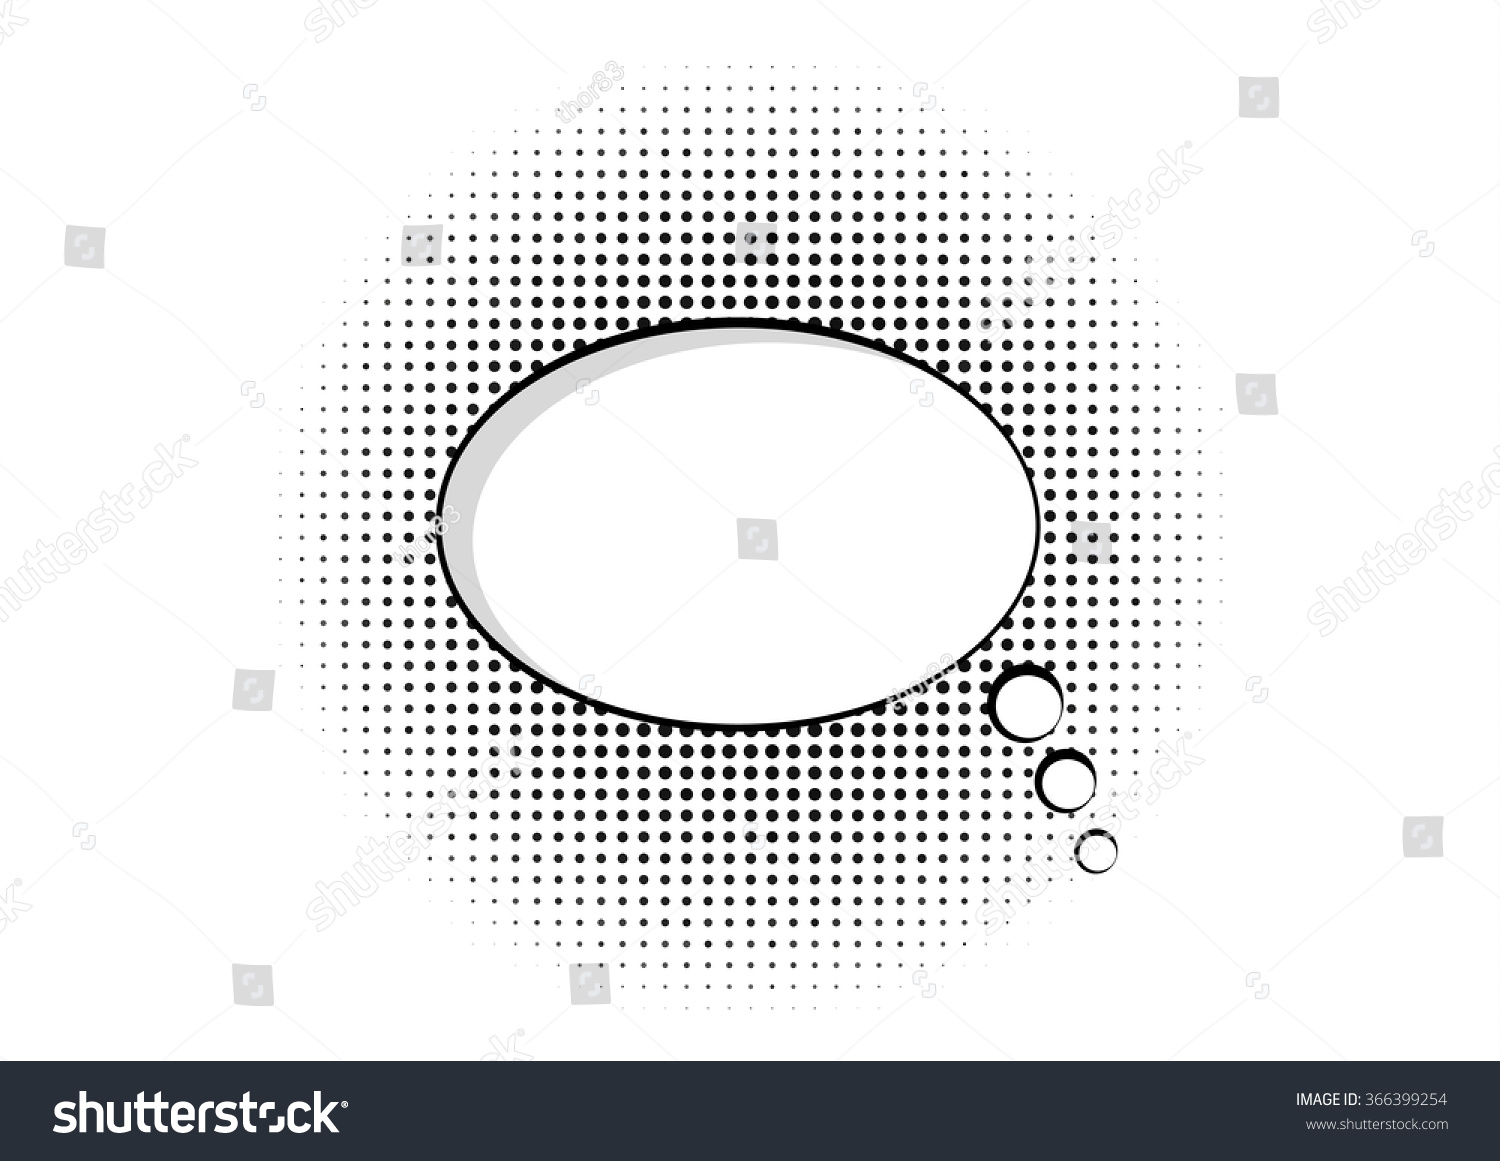 Cartoon speech pop art bubble halftone stock vector 366399254 cartoon speech pop art bubble halftone communication background vector empty cloud symbol with place for text biocorpaavc Gallery